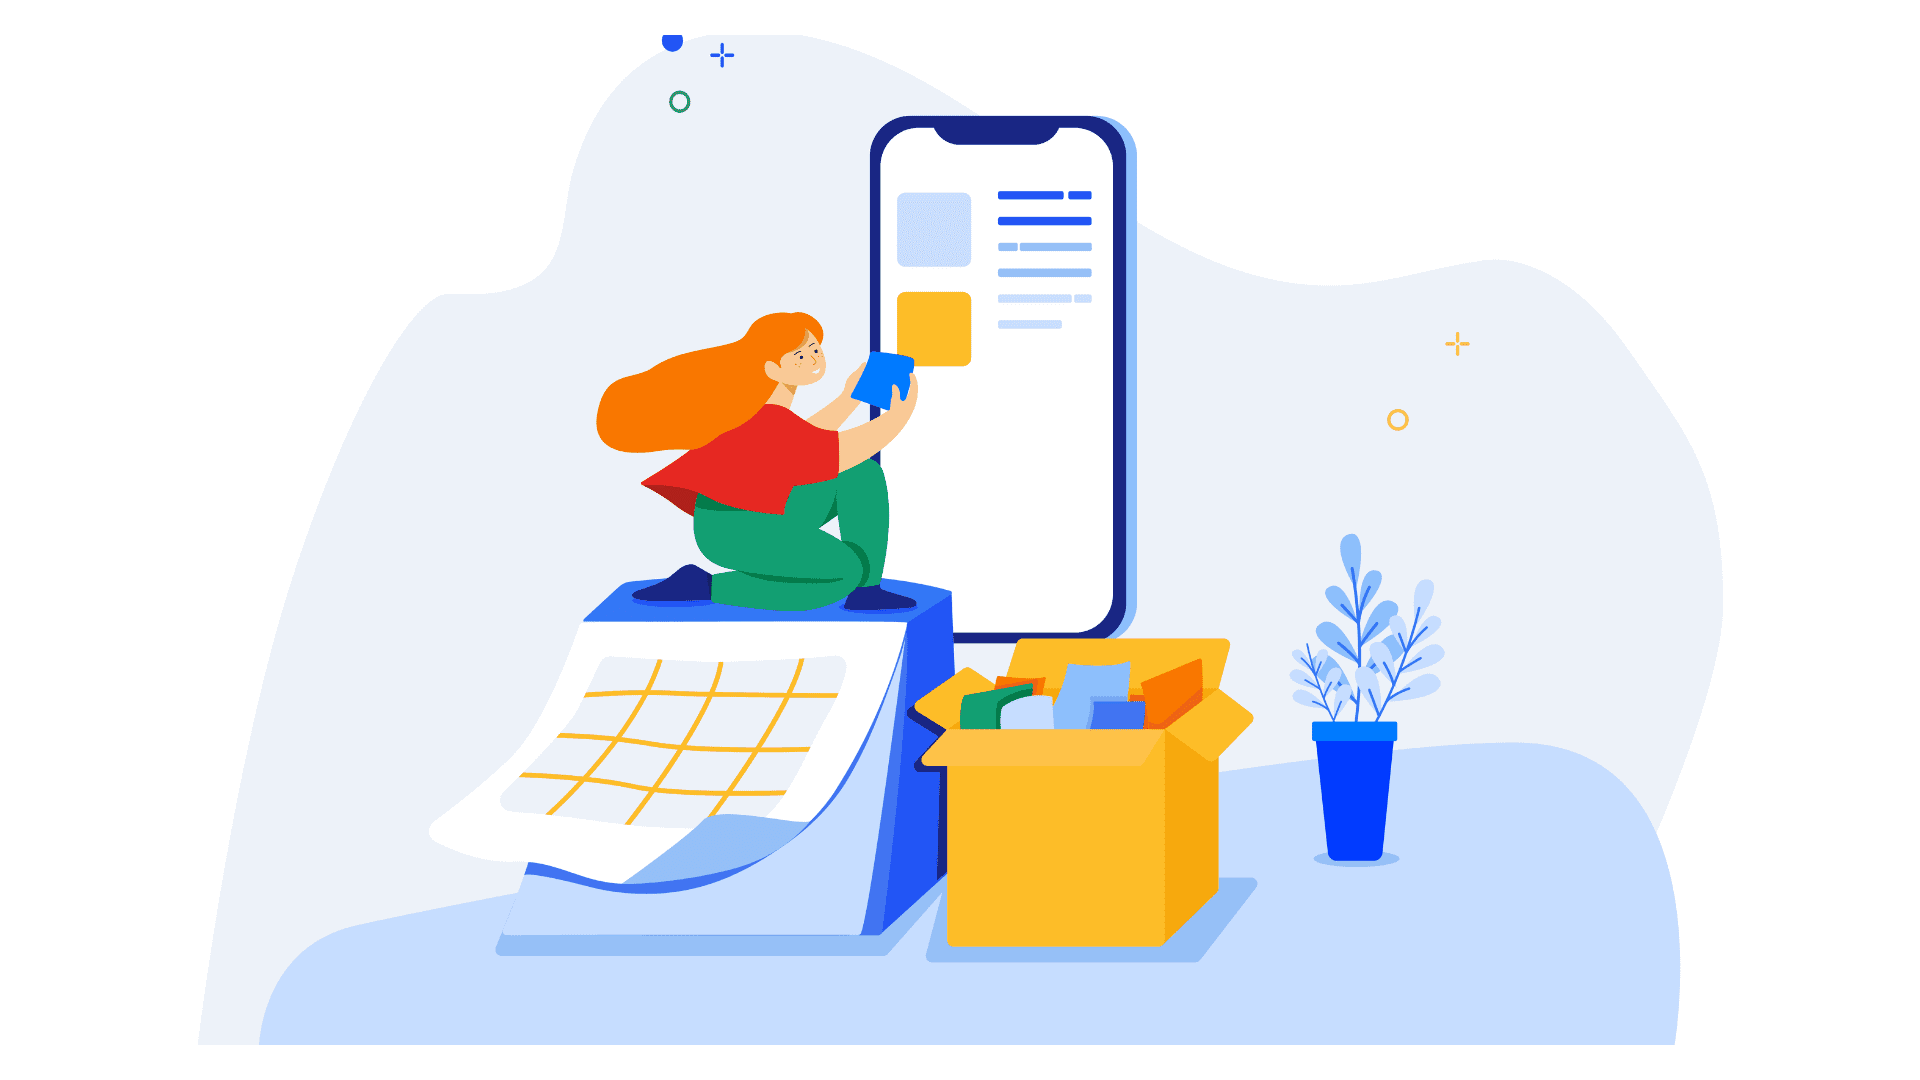 Manage your app's content from your website